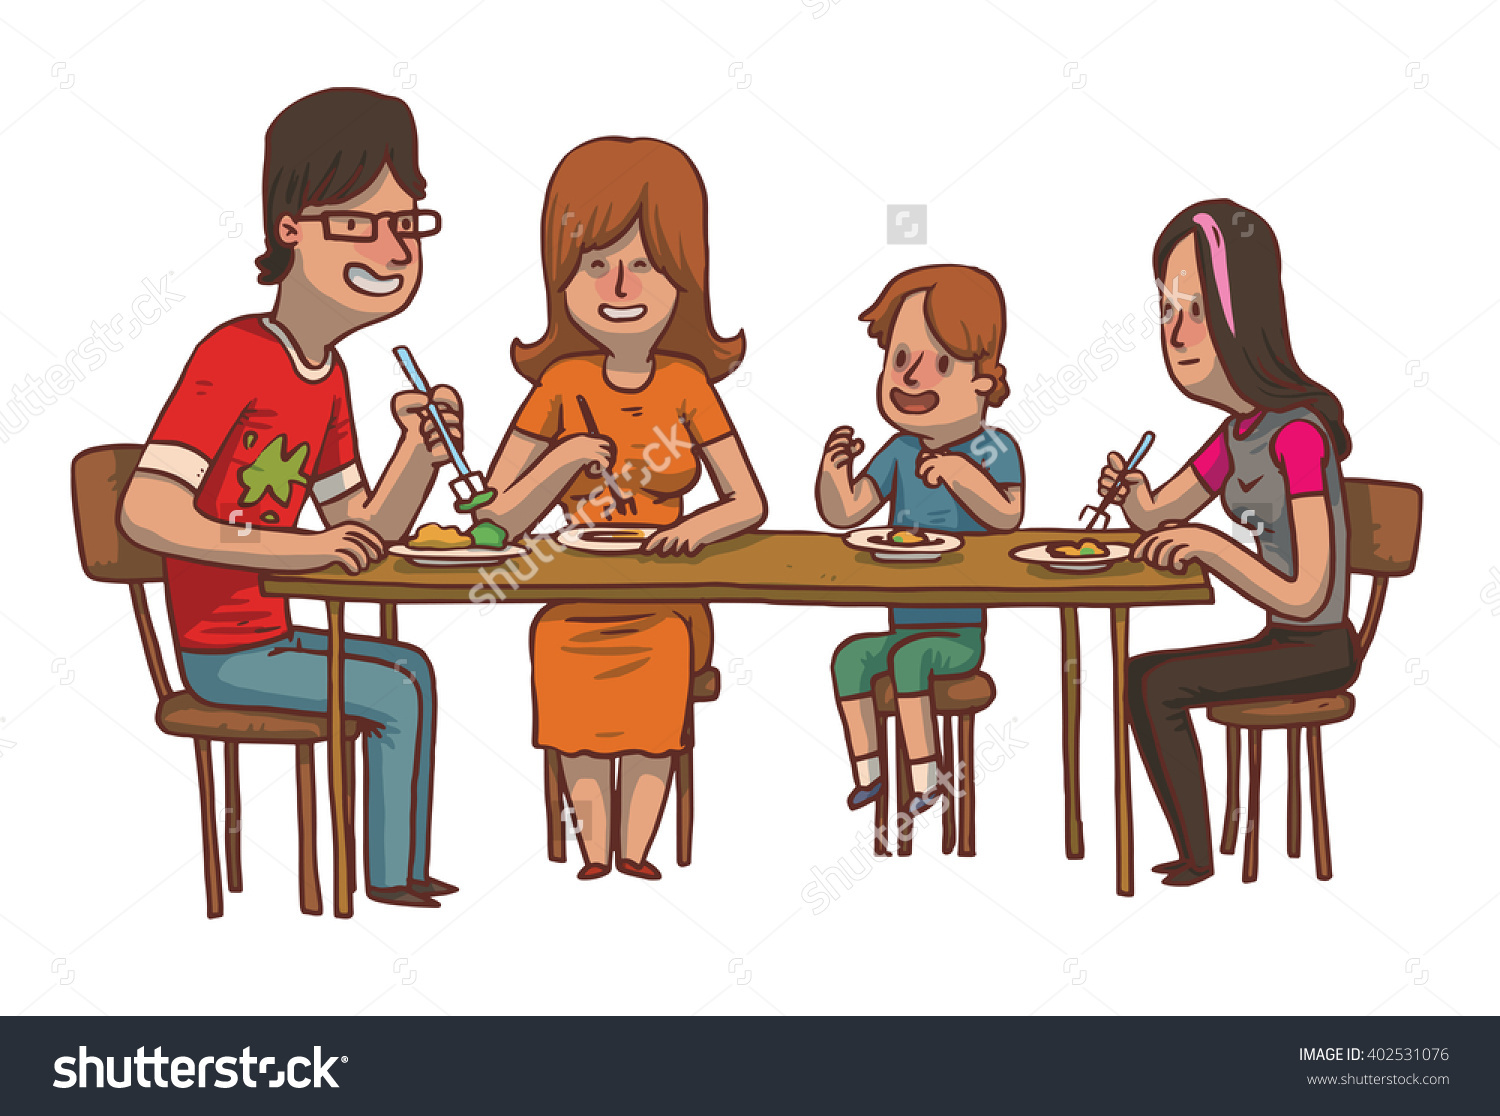 Vector Cartoon Image Family Dinner Father Stock Vector 402531076.